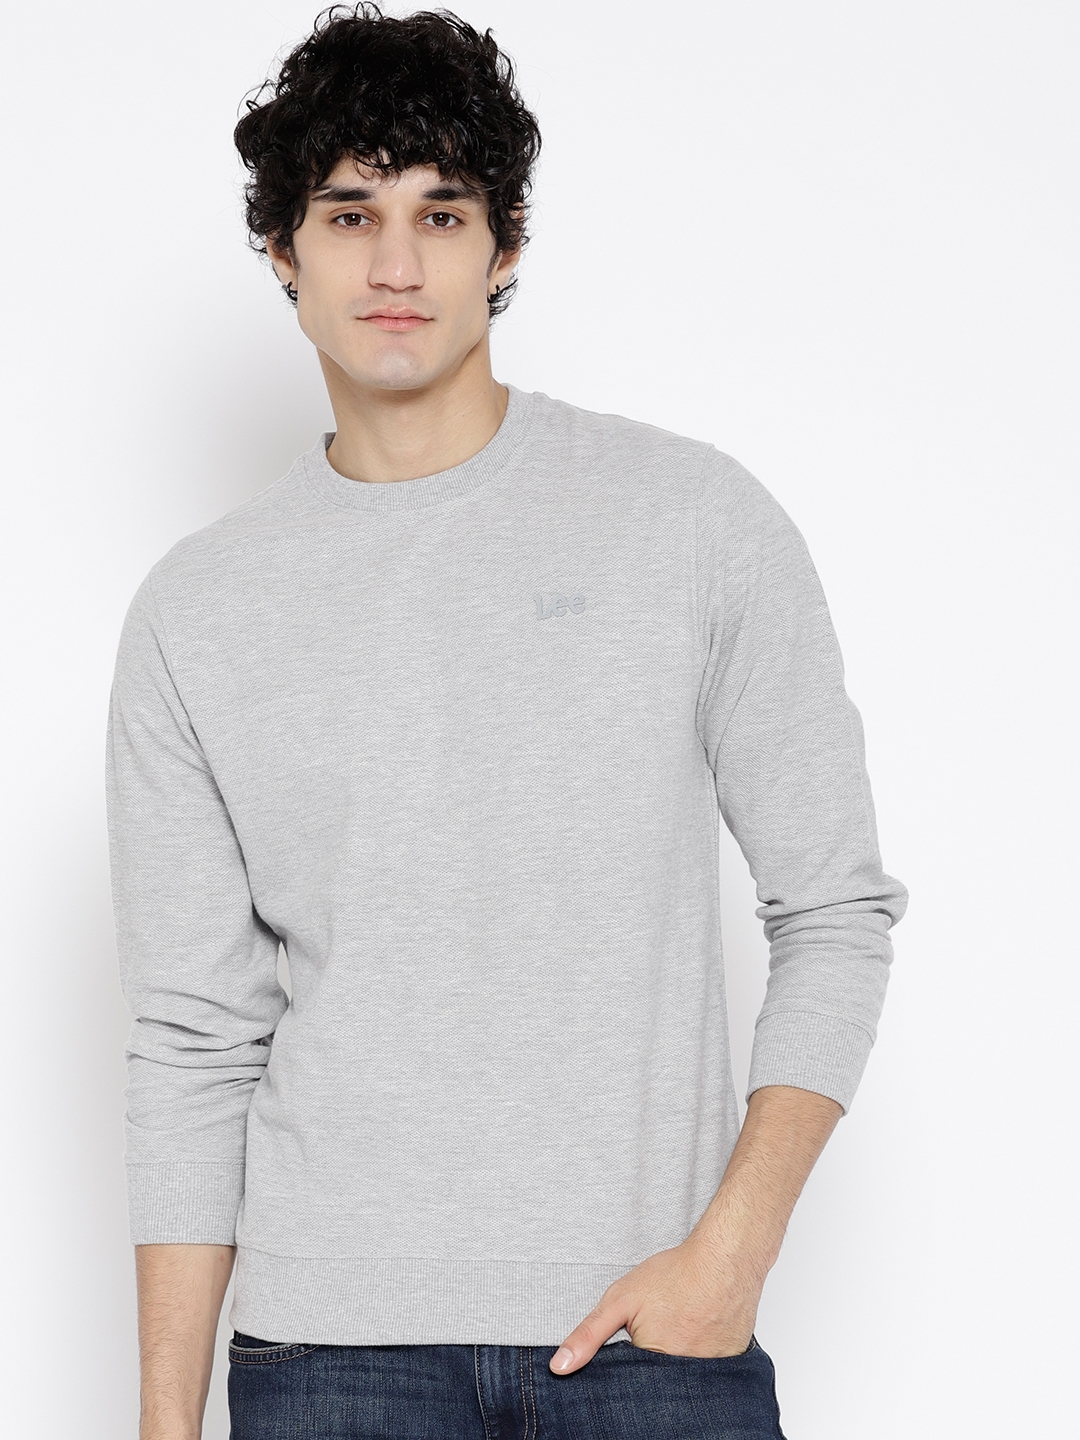 Lee Men Grey Melange Solid Sweatshirt